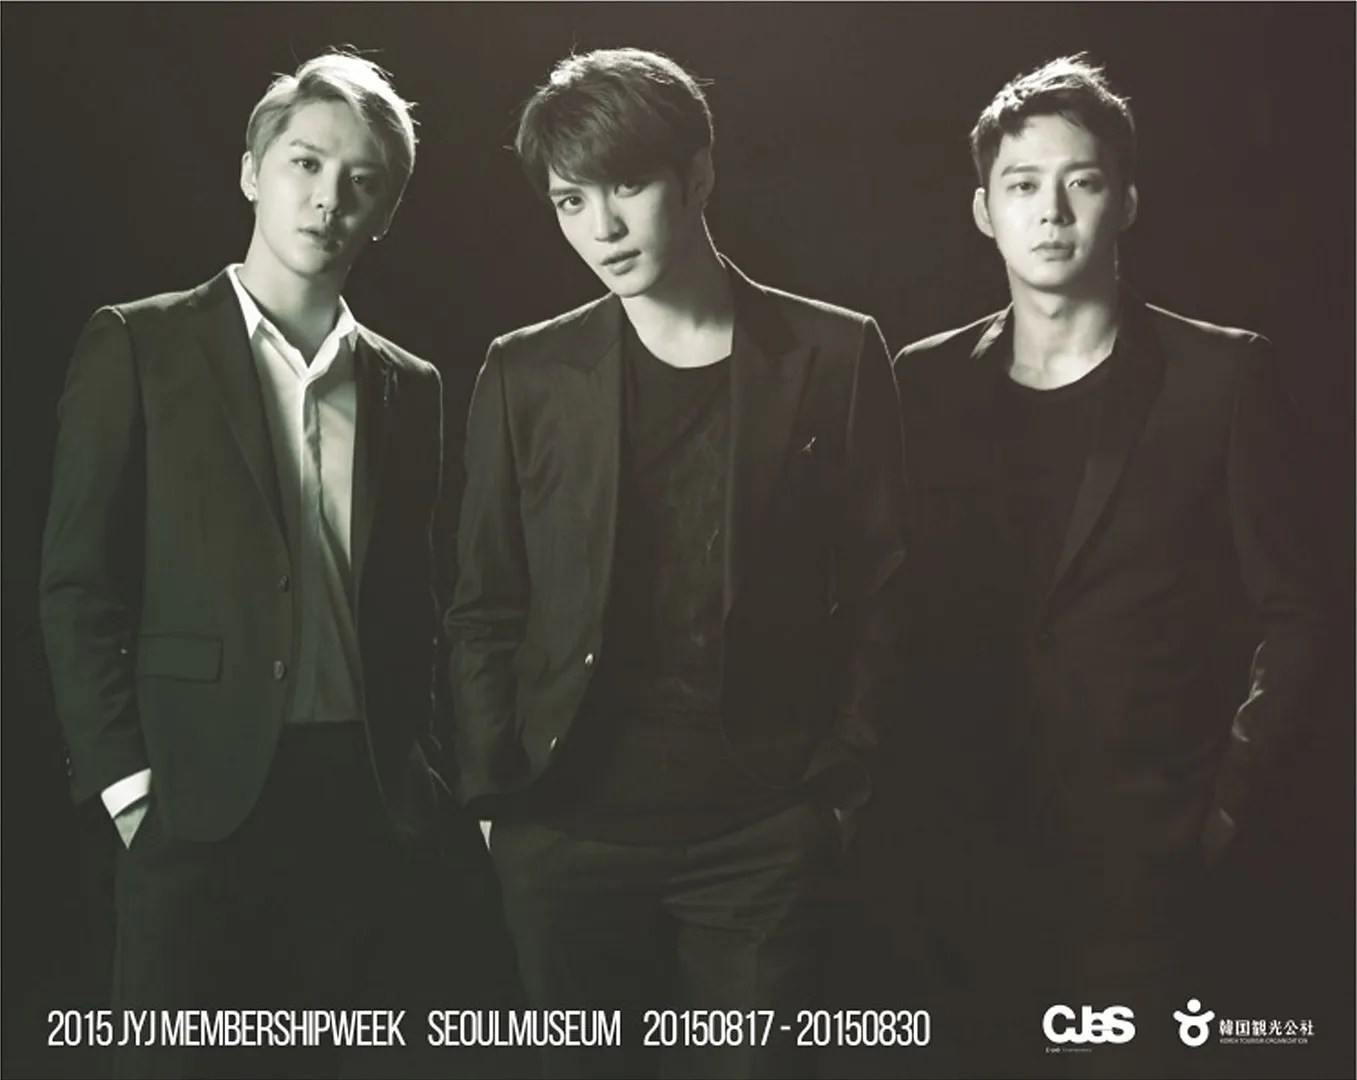 photo 2015JYJMEMBERSHIPWEEK.jpg